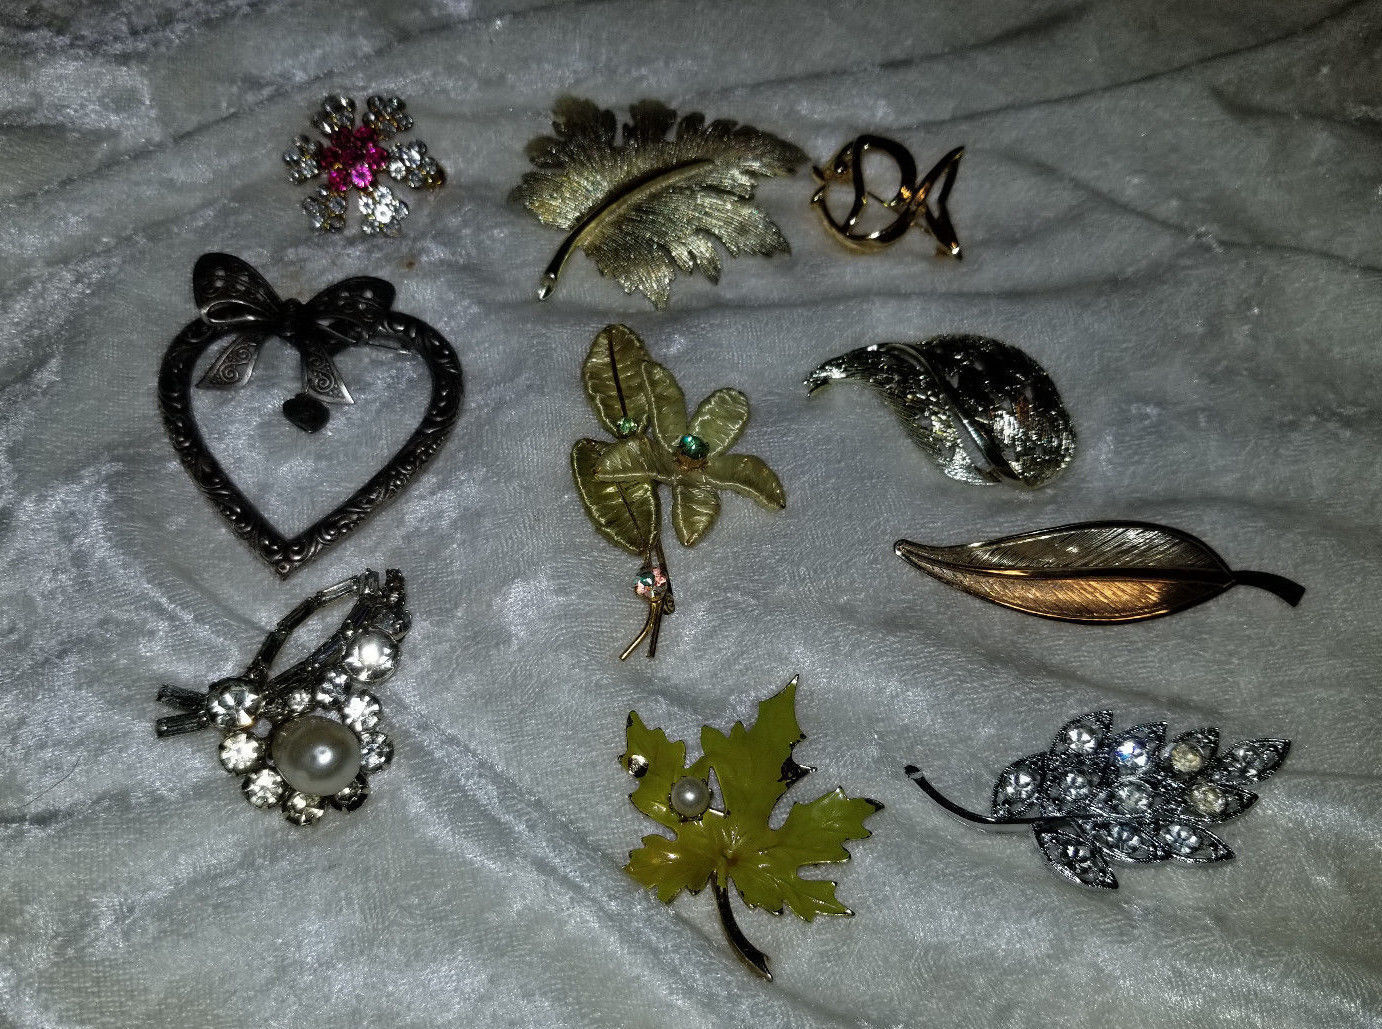 Lot of vintage pin brooches Signed Emmons leaf flowers rhinestone as is - $18.00